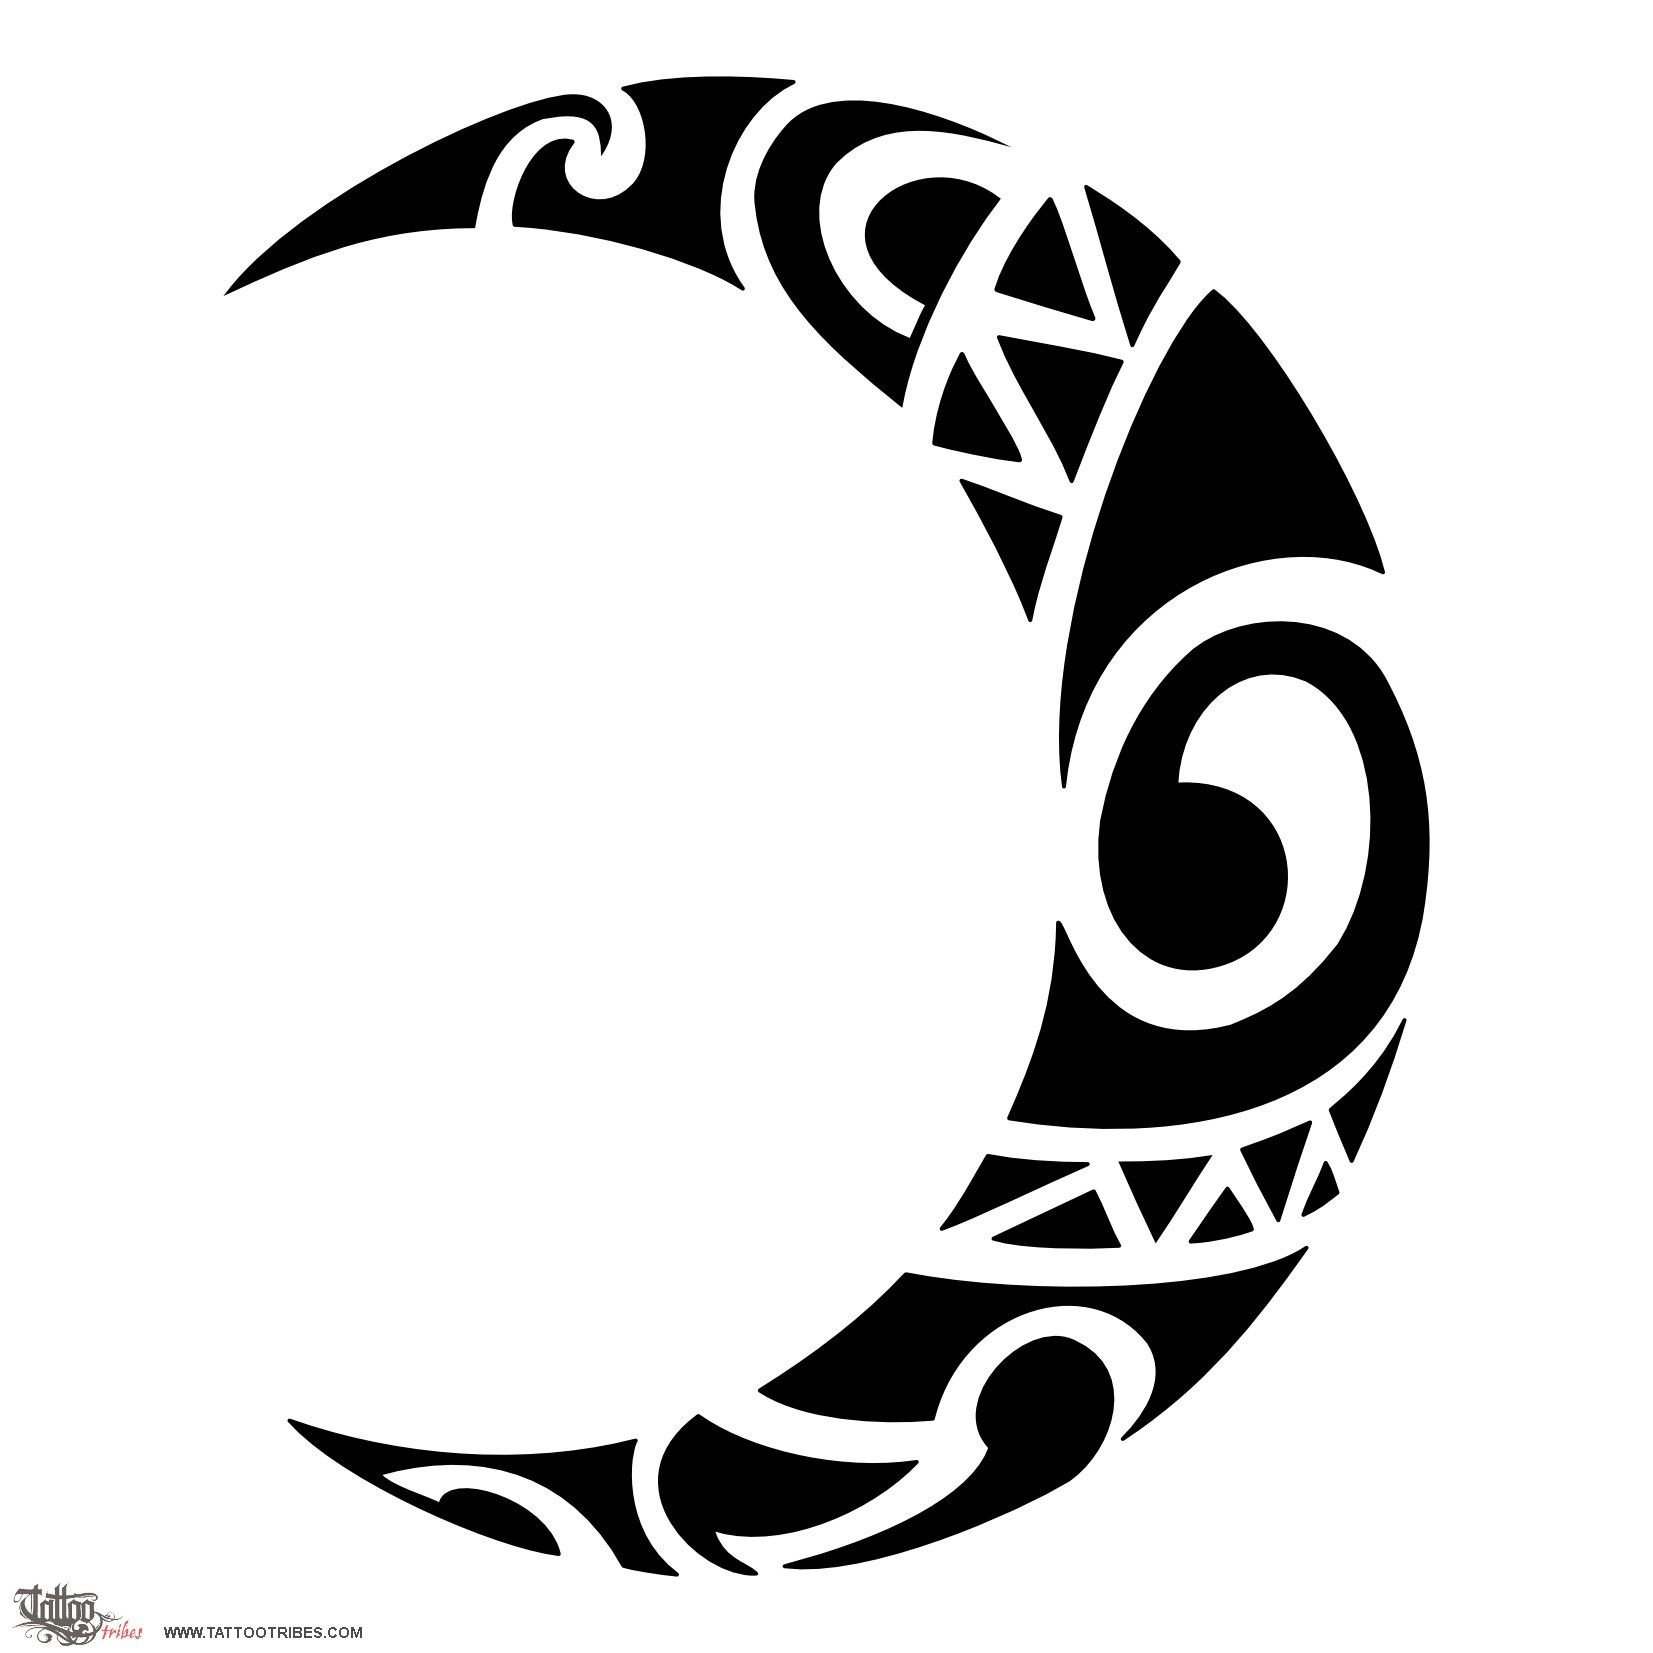 Tribal moon tattoos pinterest moon tattoo and maori moon tattoos designs ideas and meaning buycottarizona Image collections